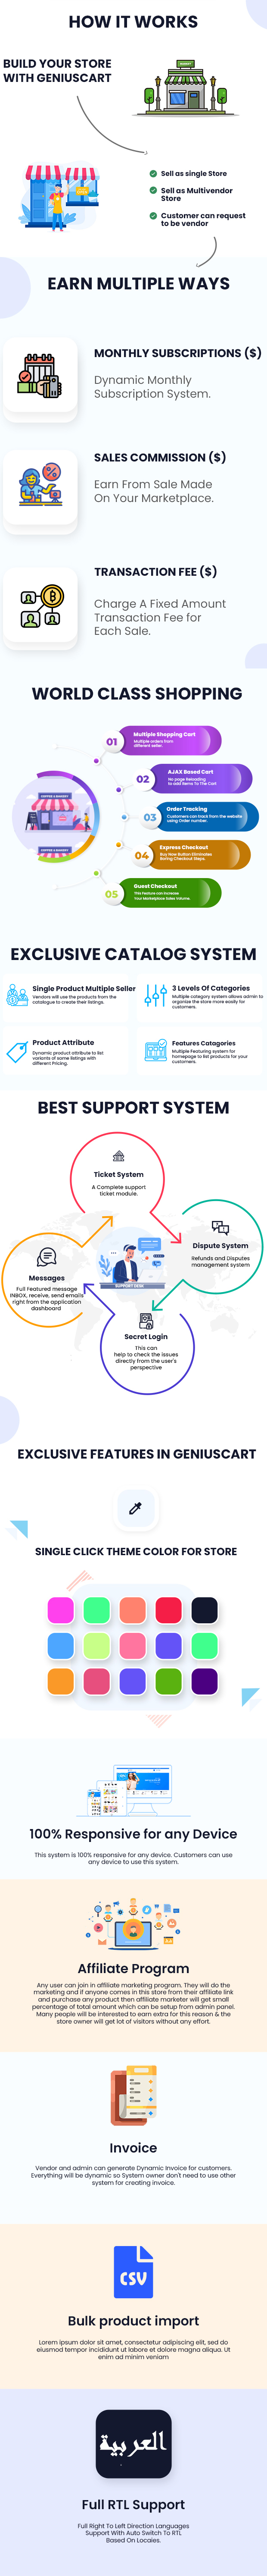 GeniusCart - Single or Multivendor Ecommerce System with Physical and Digital Product Marketplace - 3